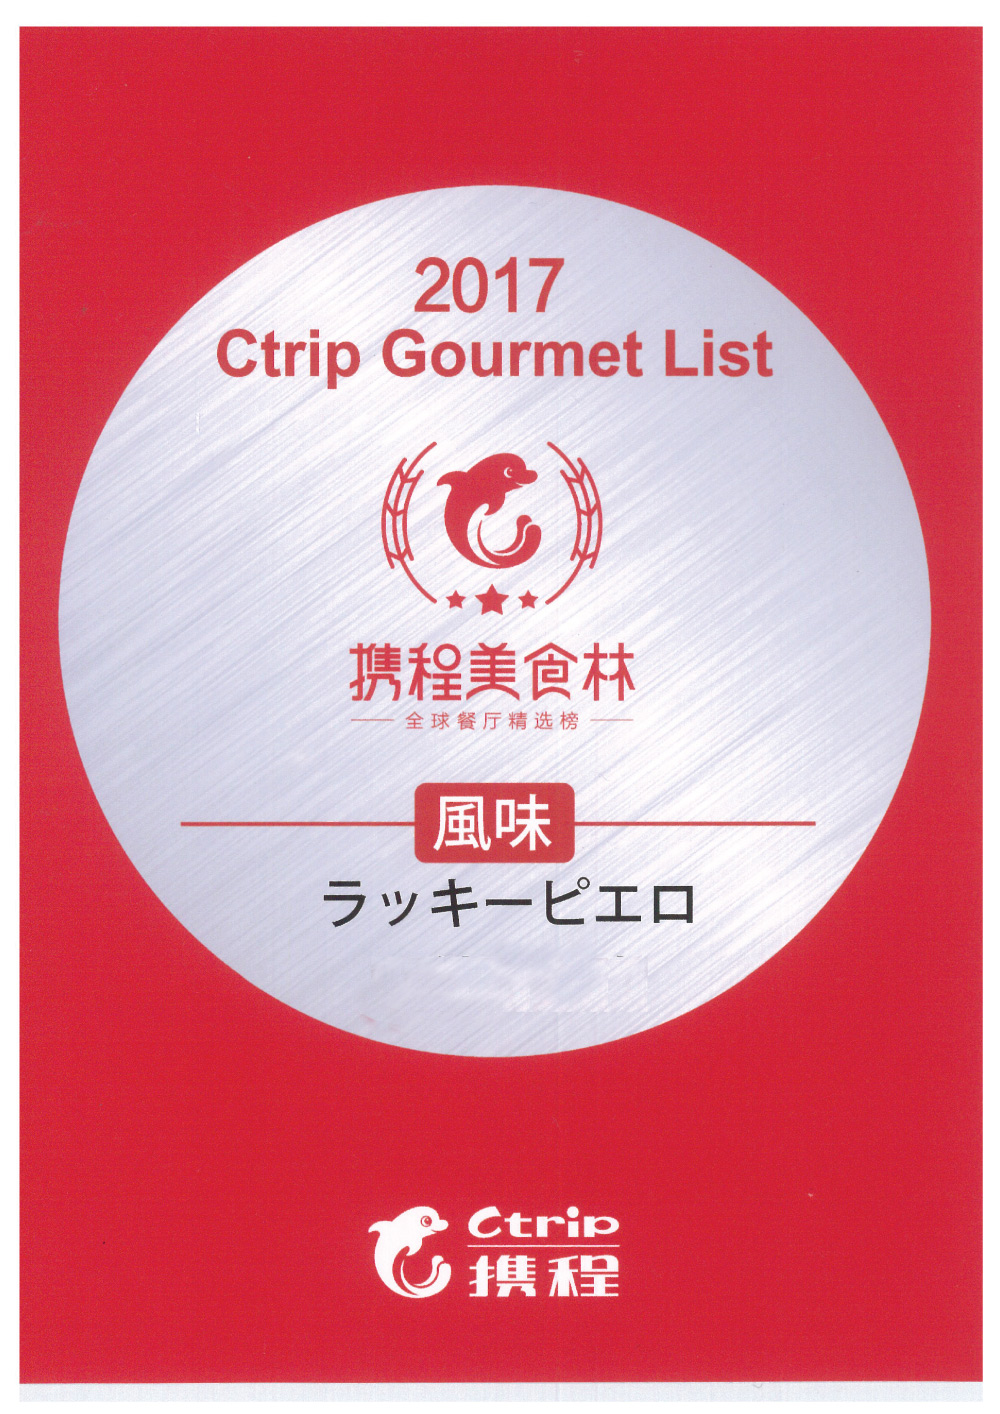 2017中国感謝状Ctrip-Gourmet-List